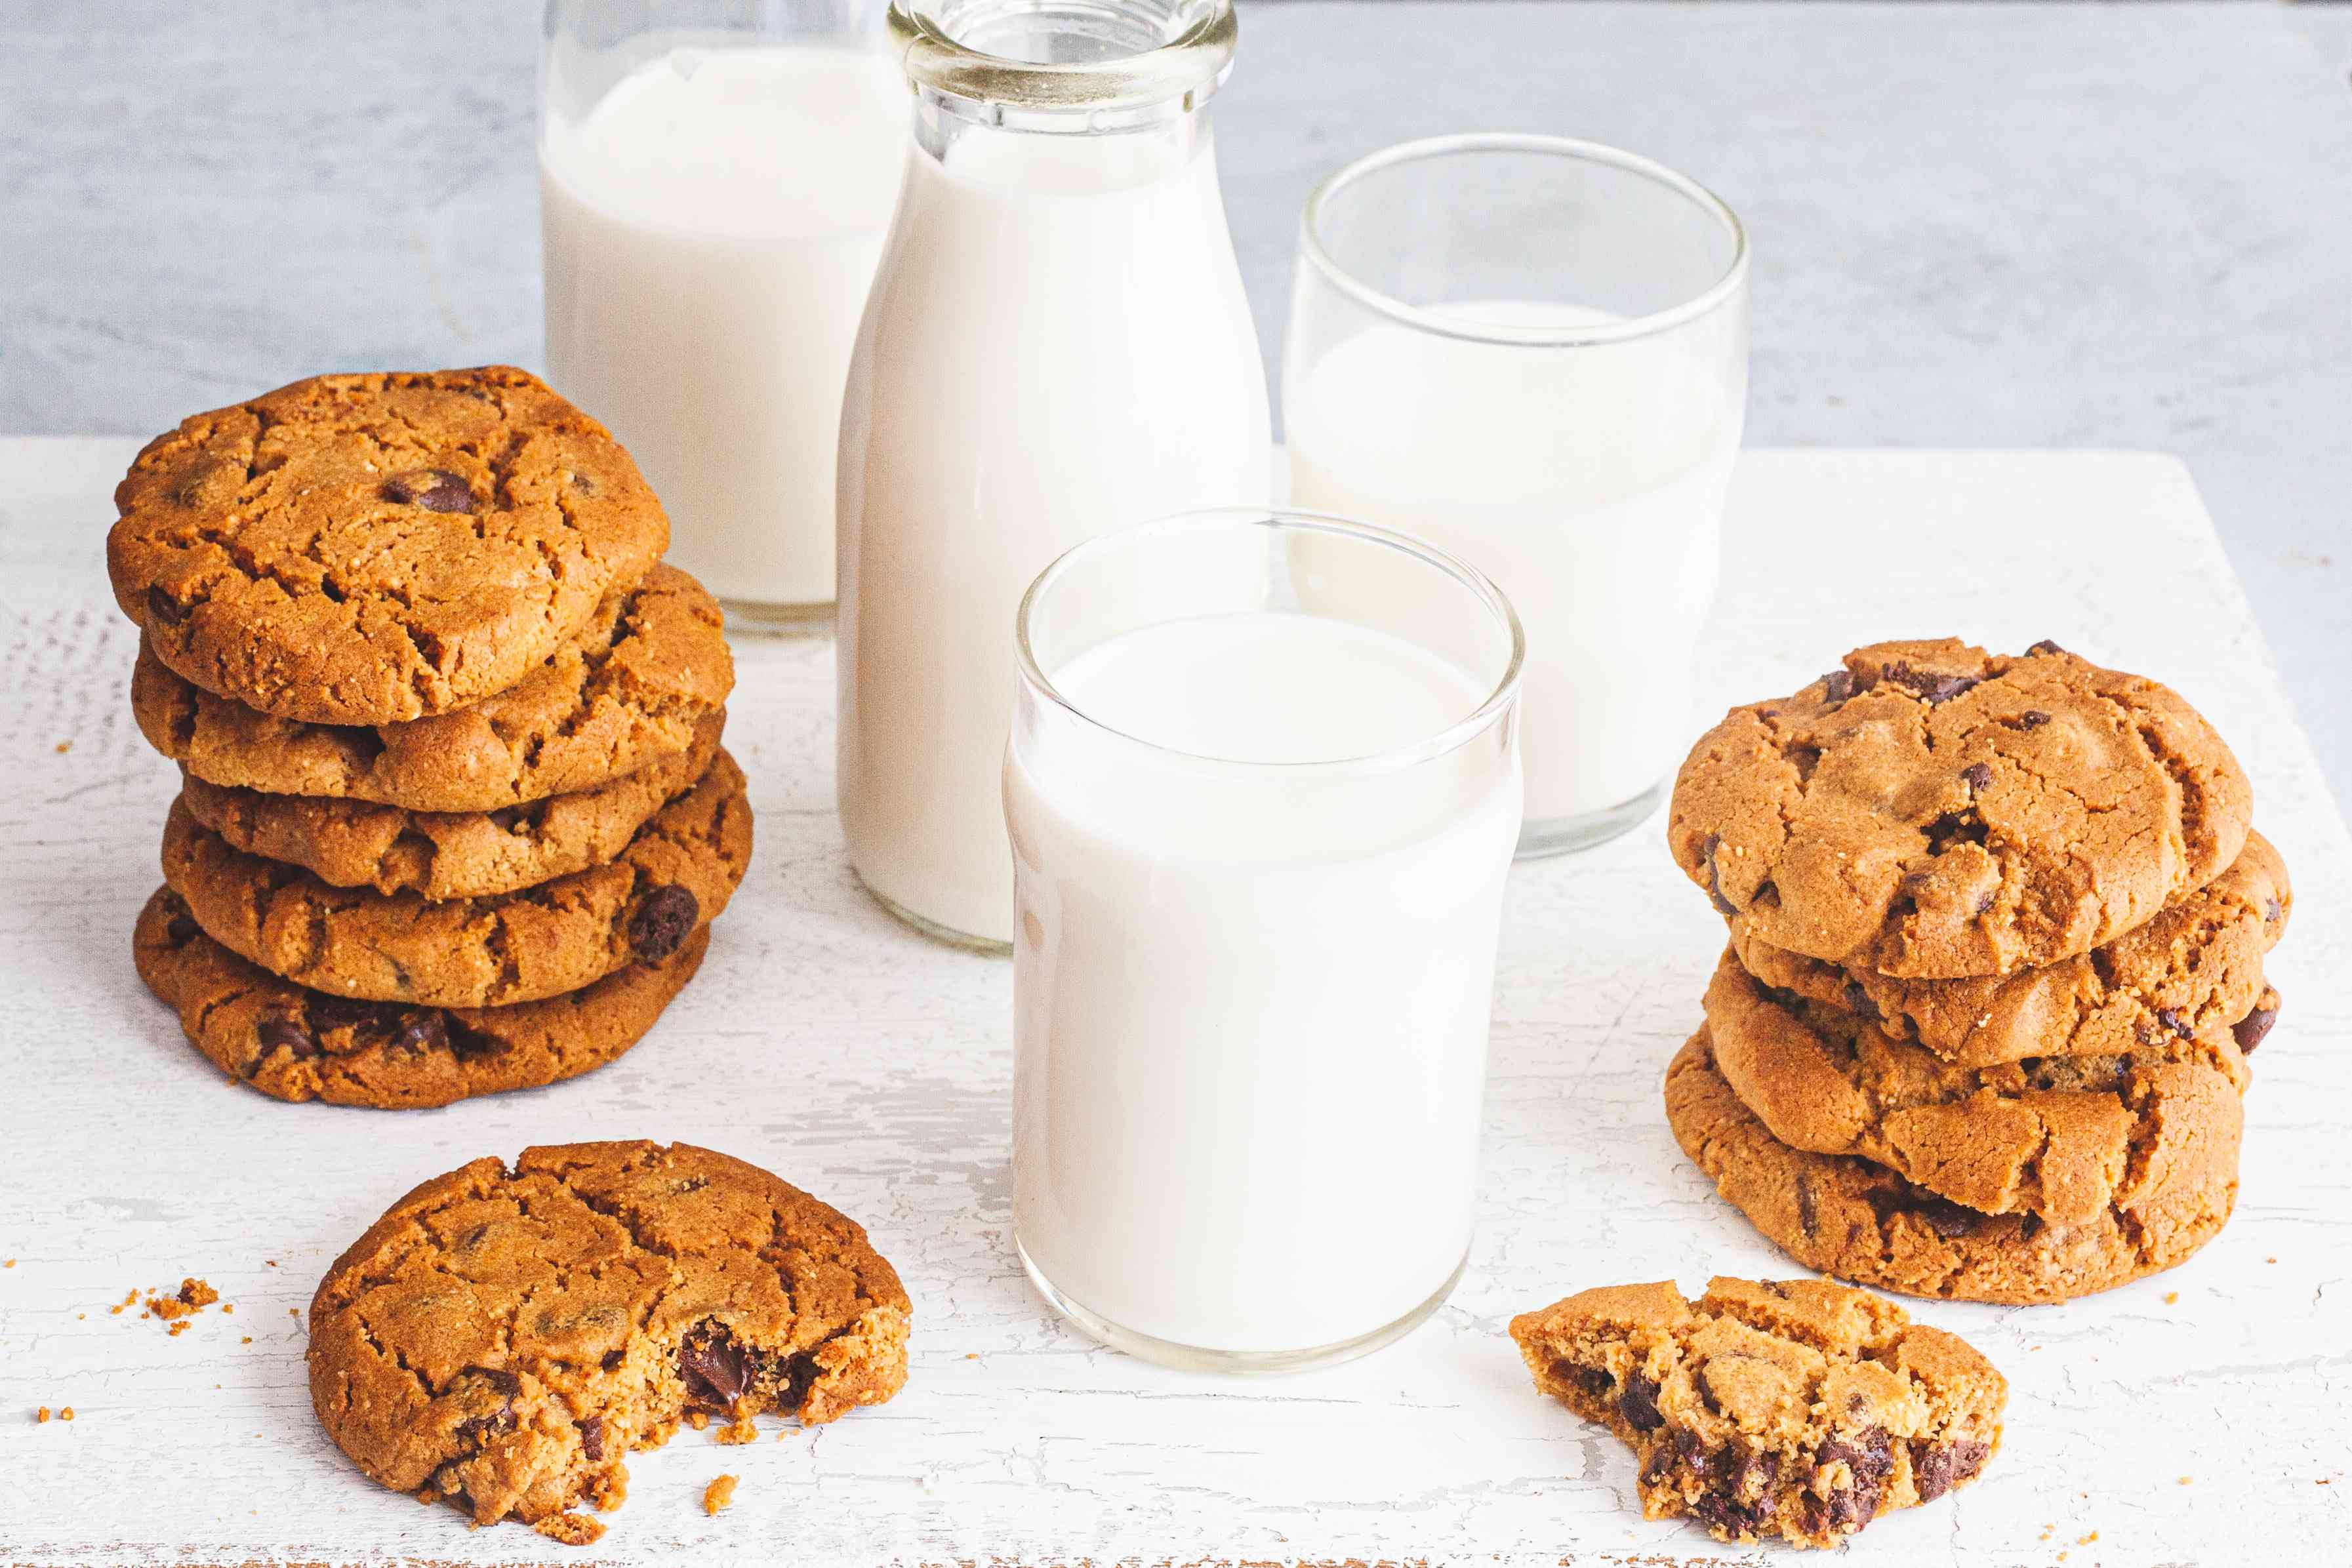 Two stacks of No Mixer Peanut Butter Chocolate Chip Cookies with glasses of milk in-between them.